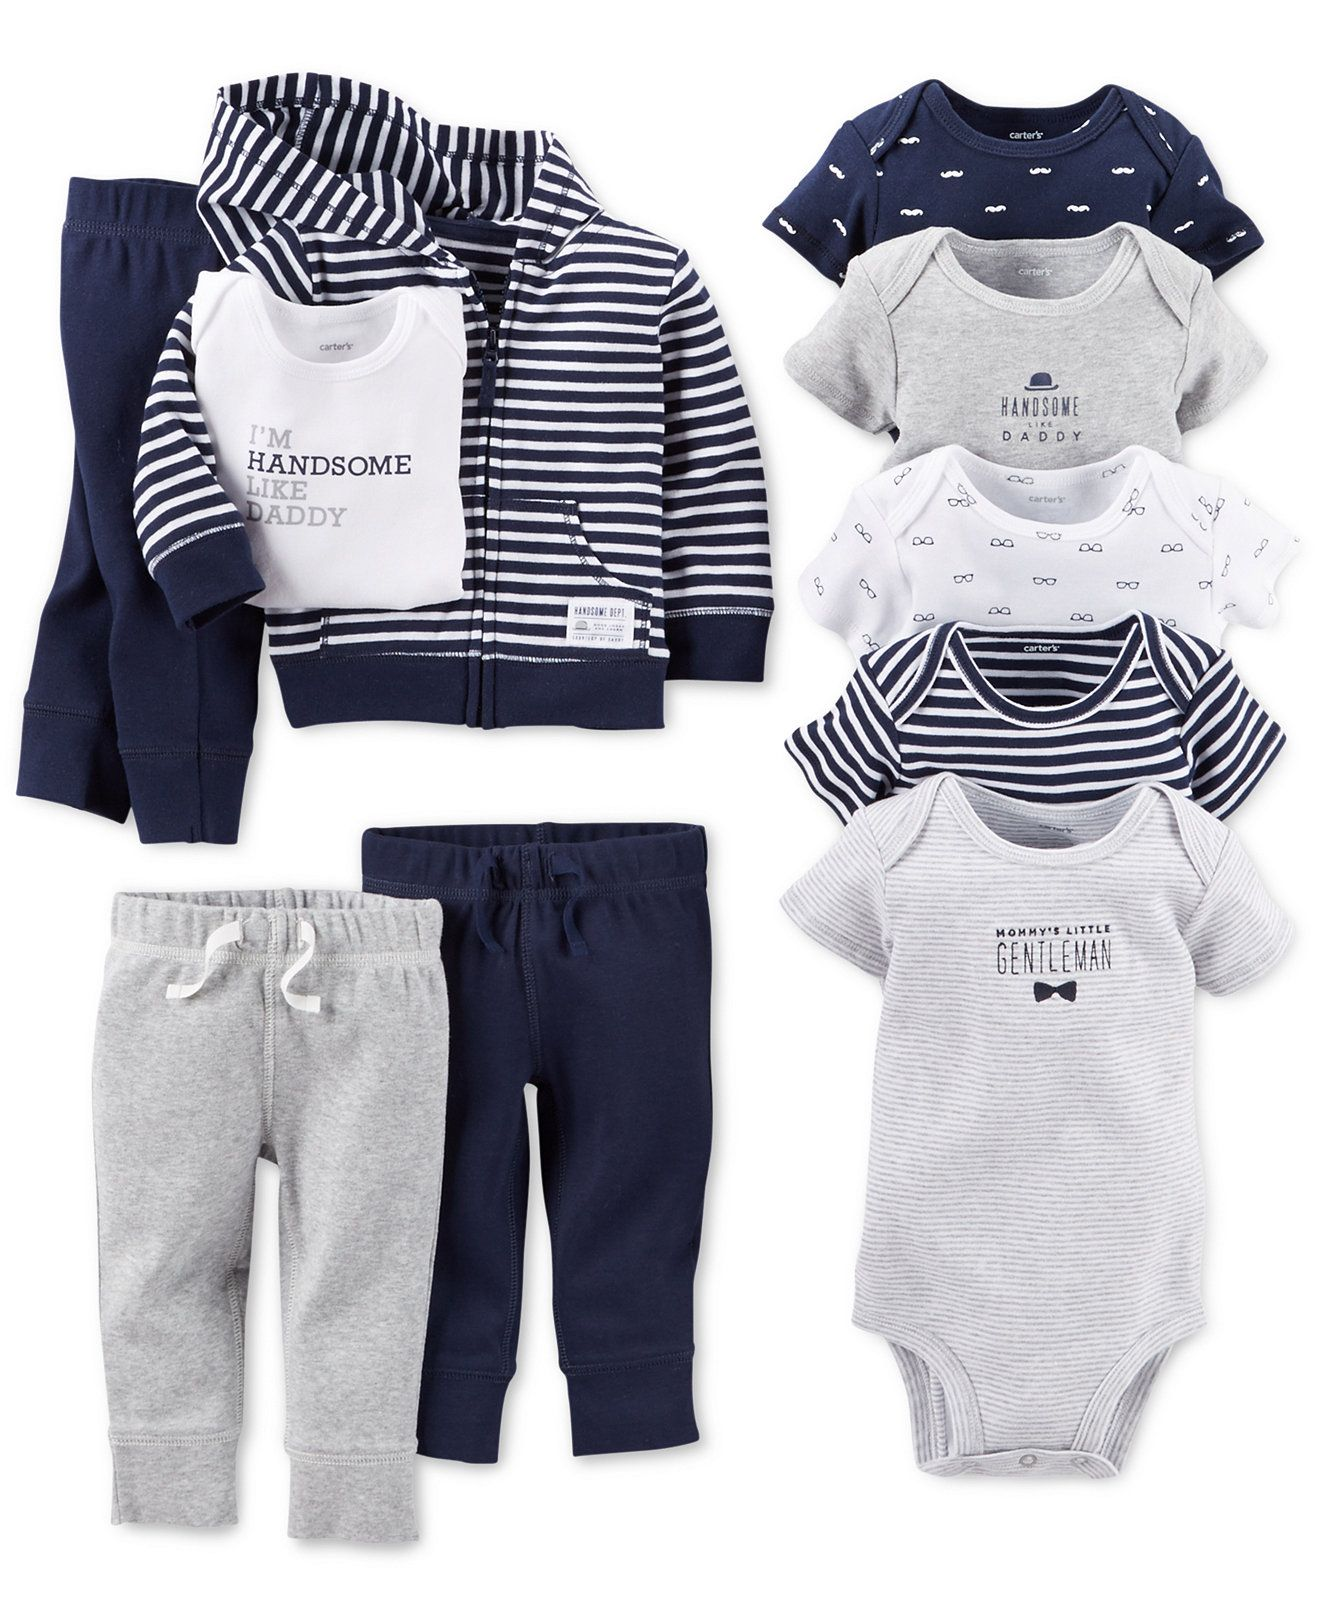 a05048e915c1 Carter s Baby Boys  Clothing Set